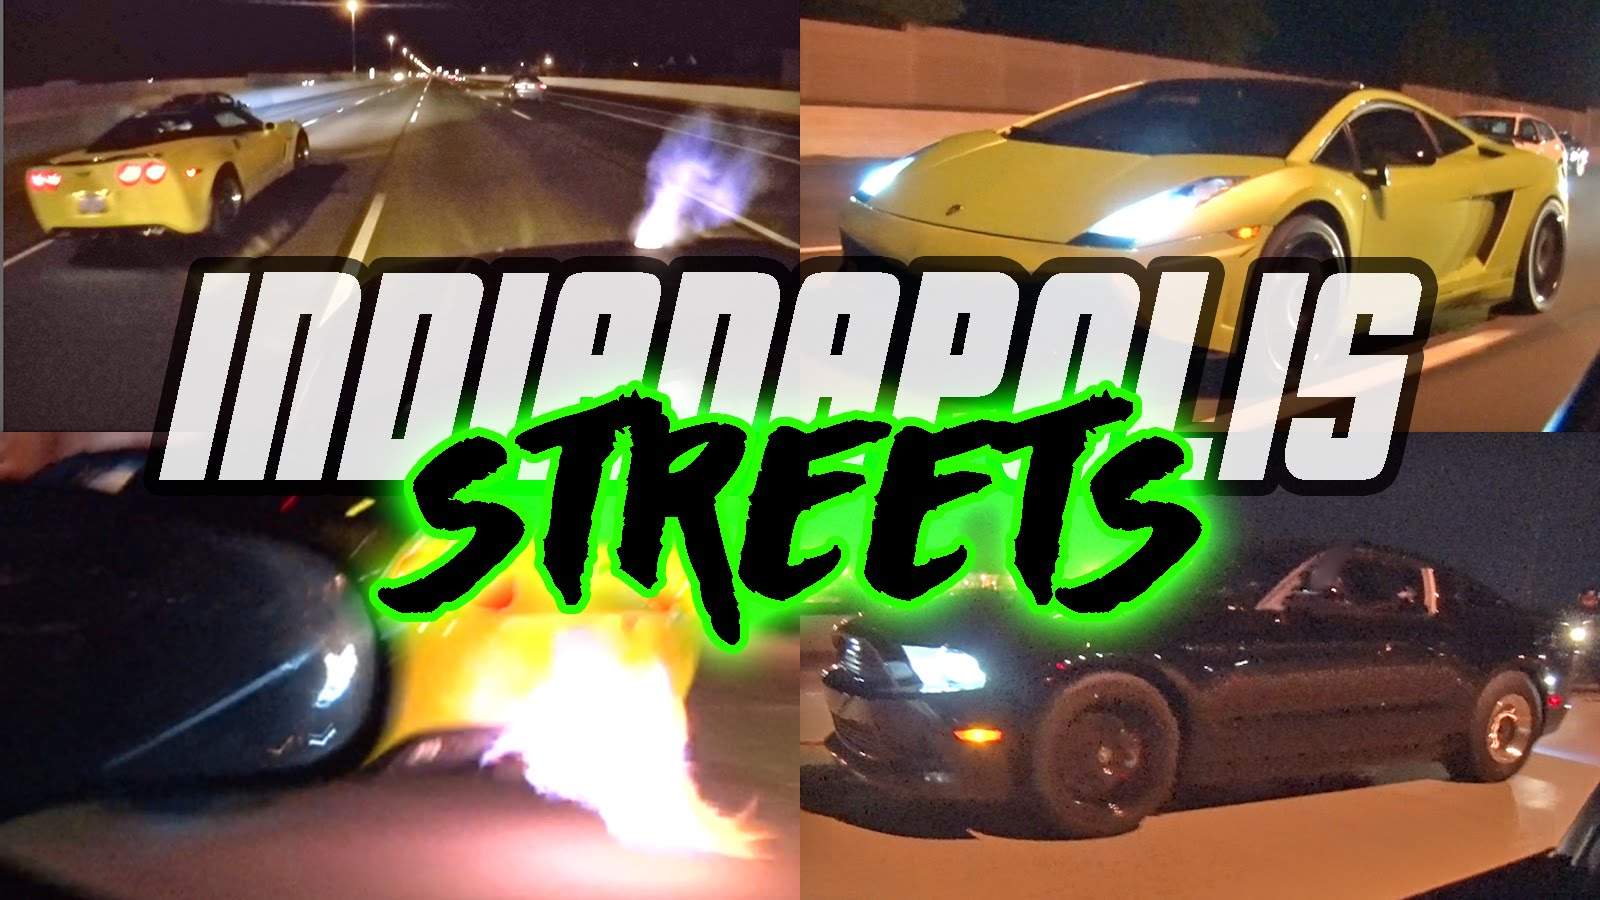 Indy Nights - Street Racing Superheroes